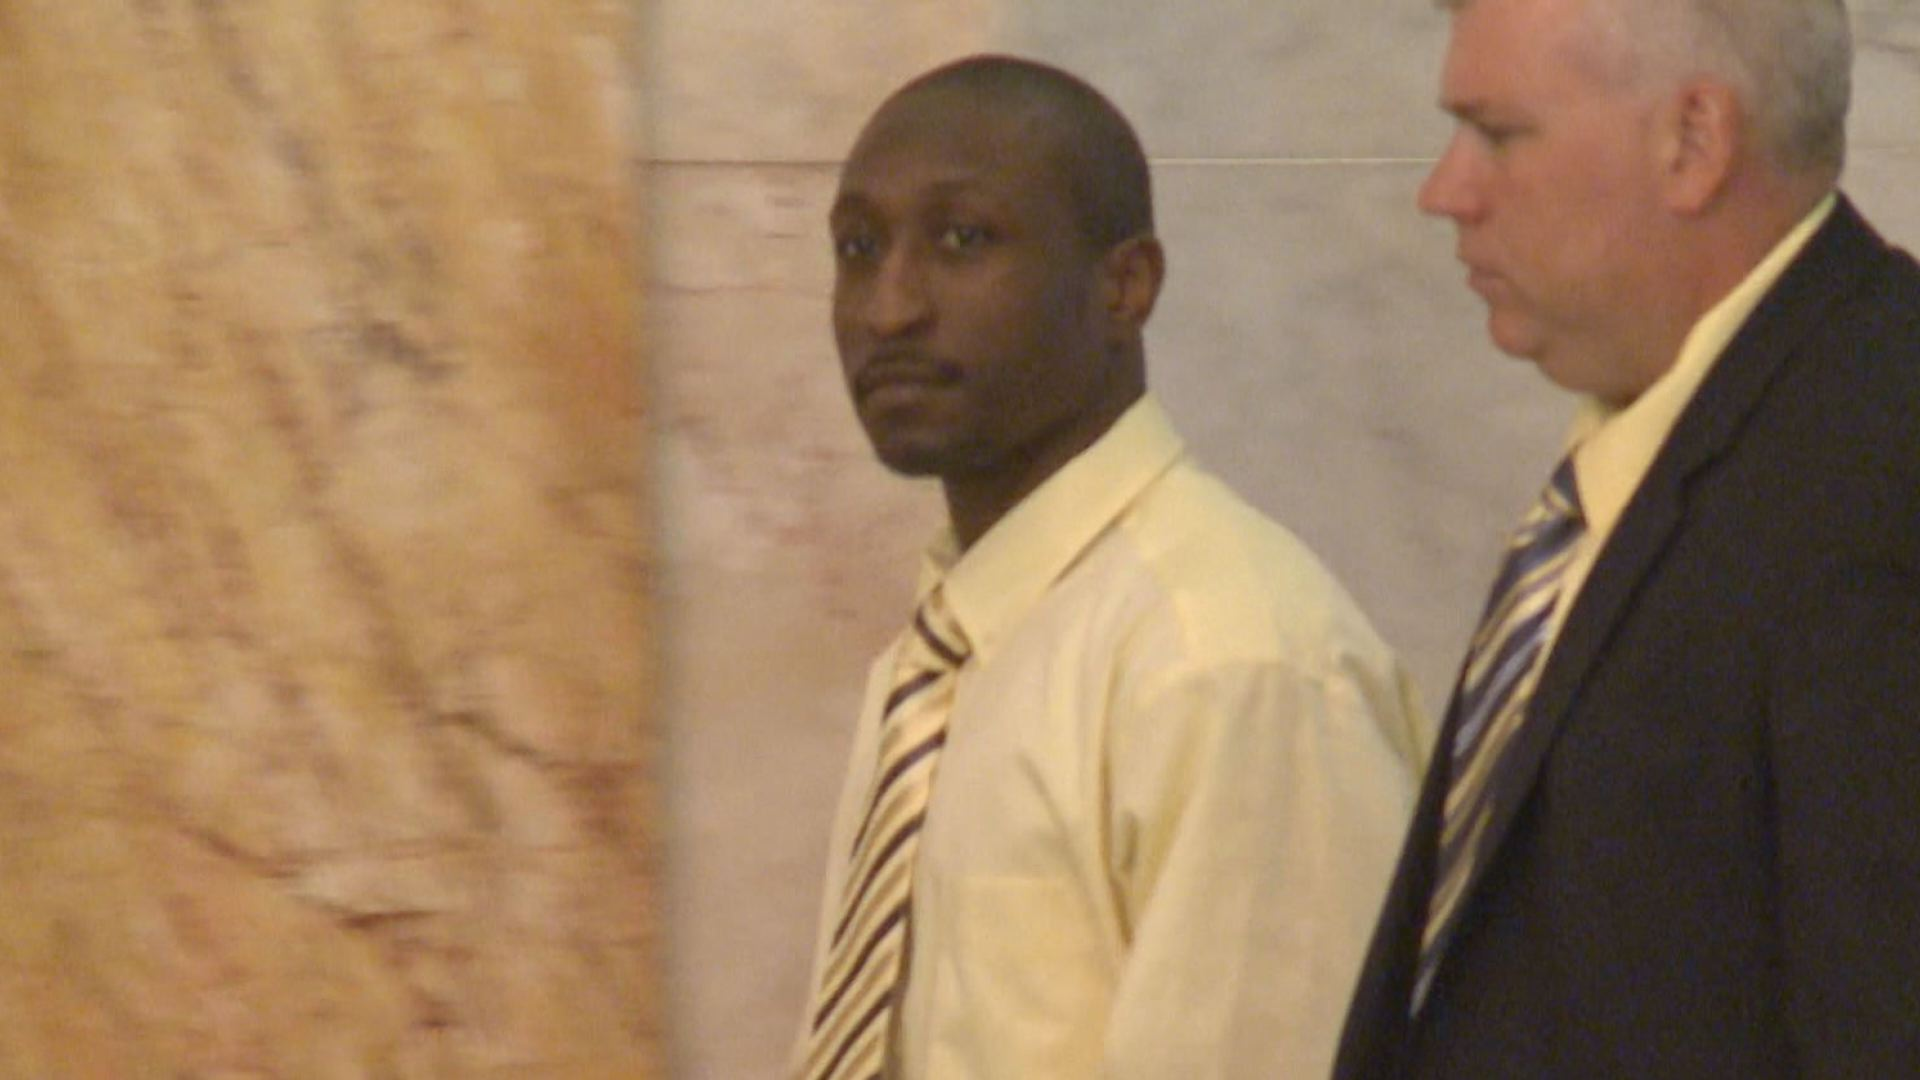 Charles Benson trial day one